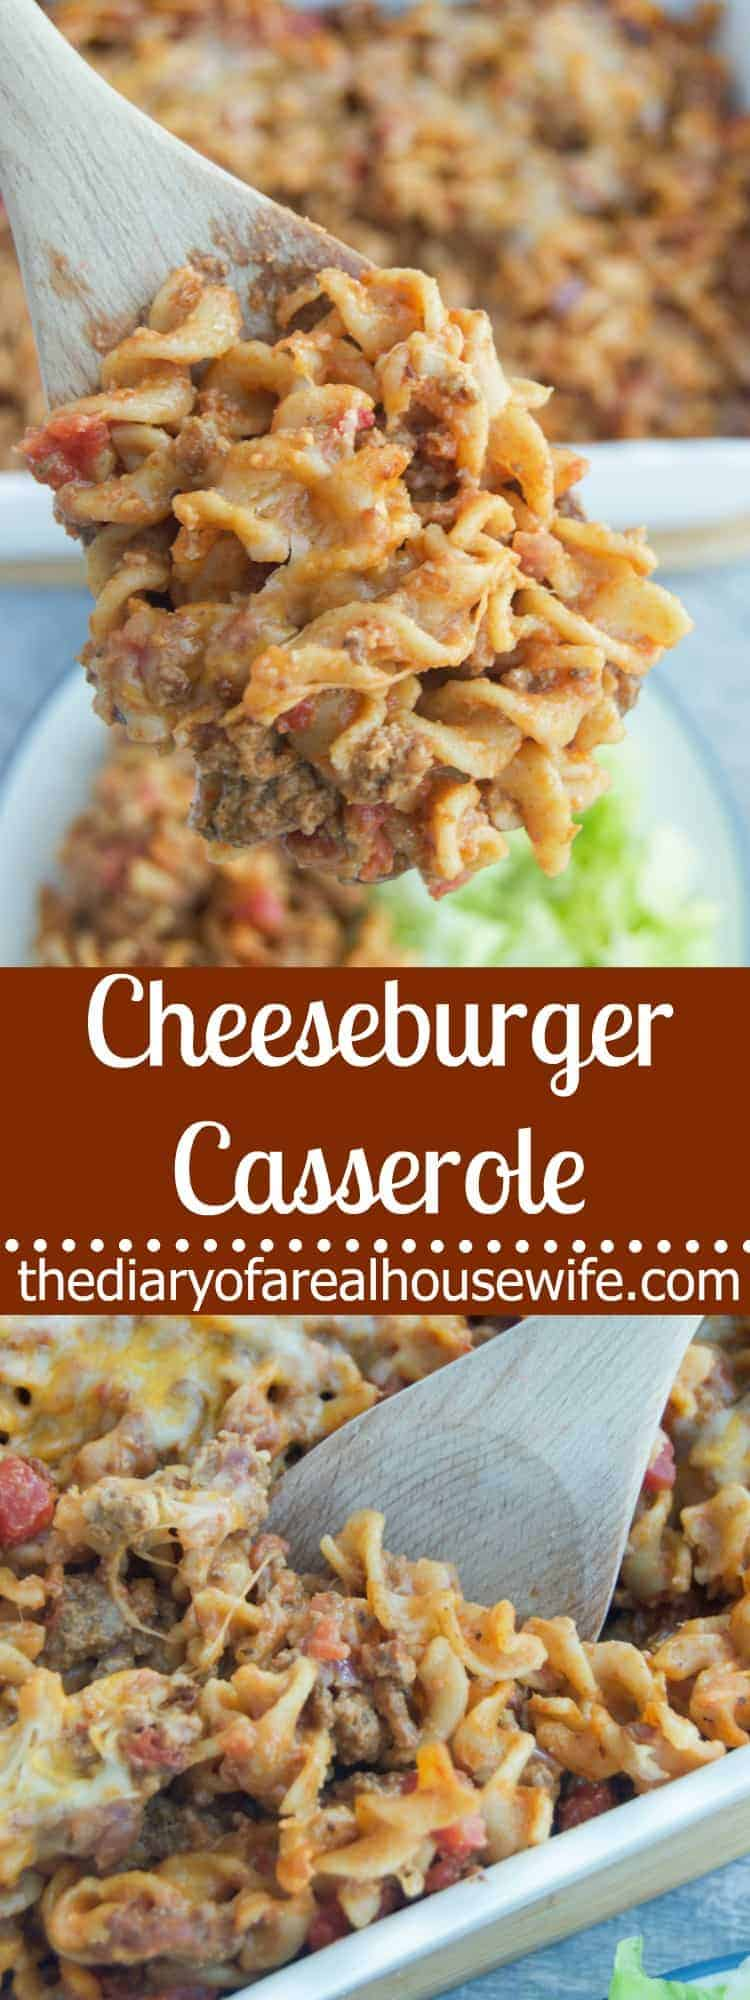 Cheeseburger Casserole by The Diary of a Real Housewife | 24 Casseroles You'll Want to Make This Week!